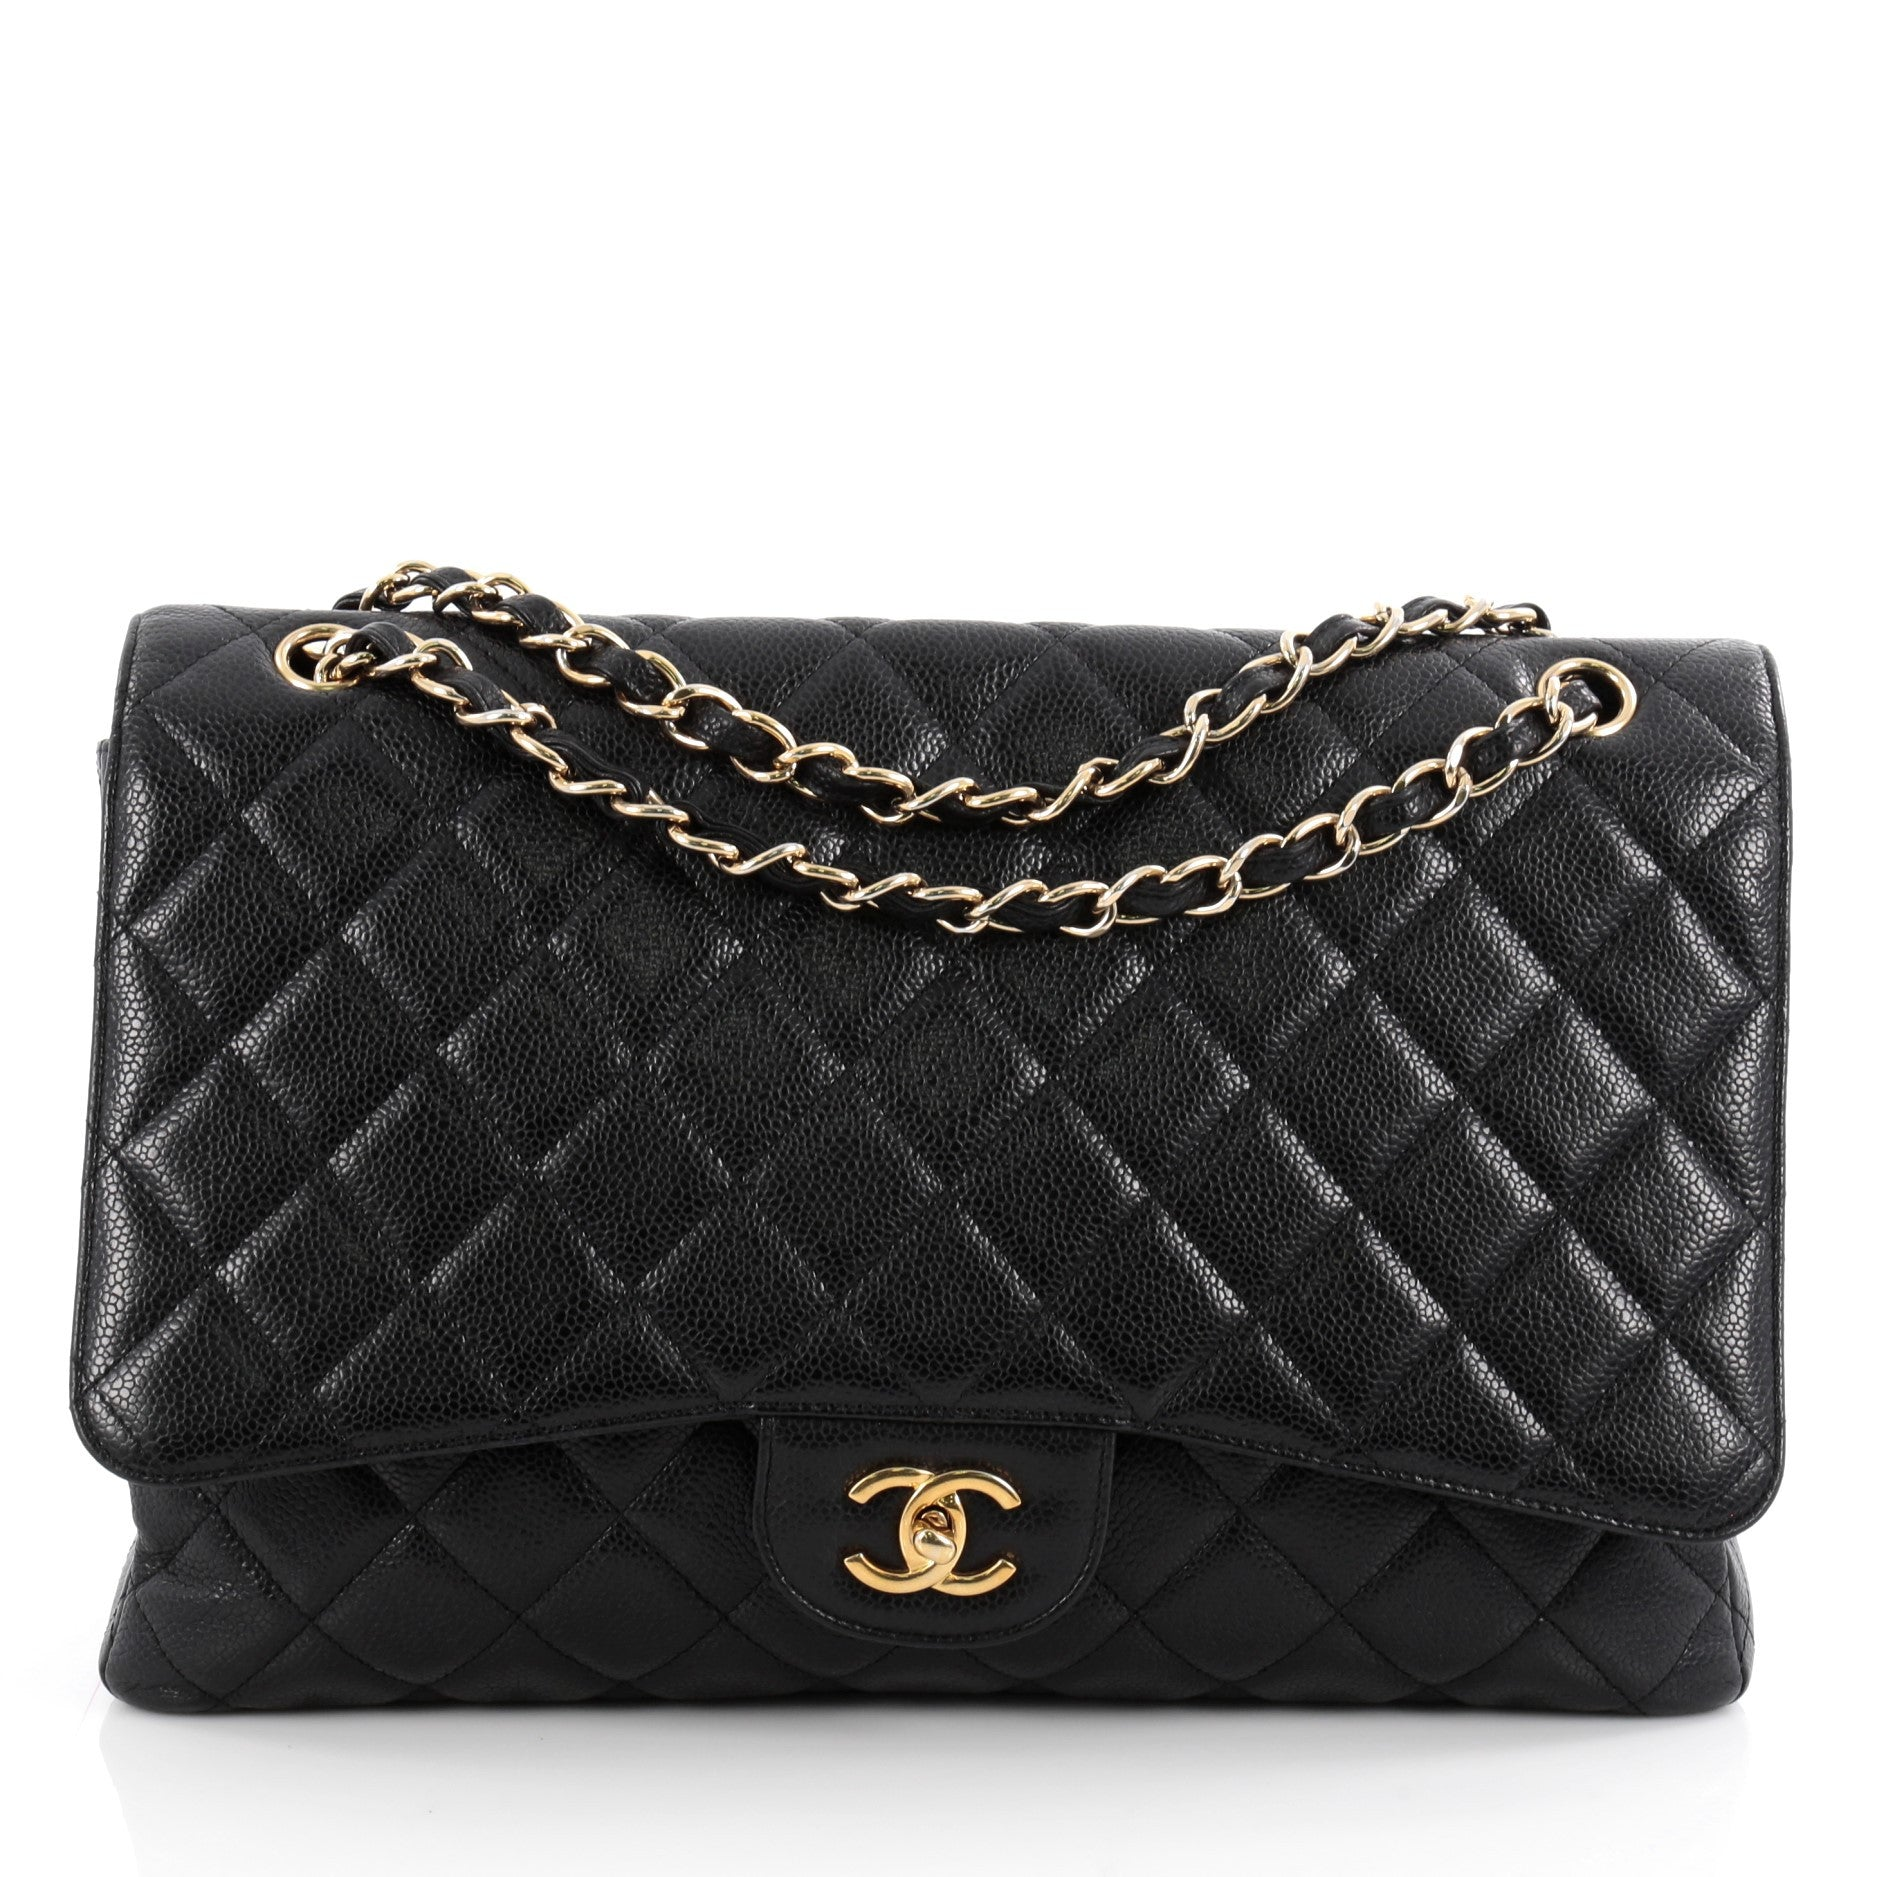 9a61ad5f613d 20865-01_Chanel_Classic_Single_Flap_Bag_Quilted_Ca_2D_0003.jpg?v=1499780949